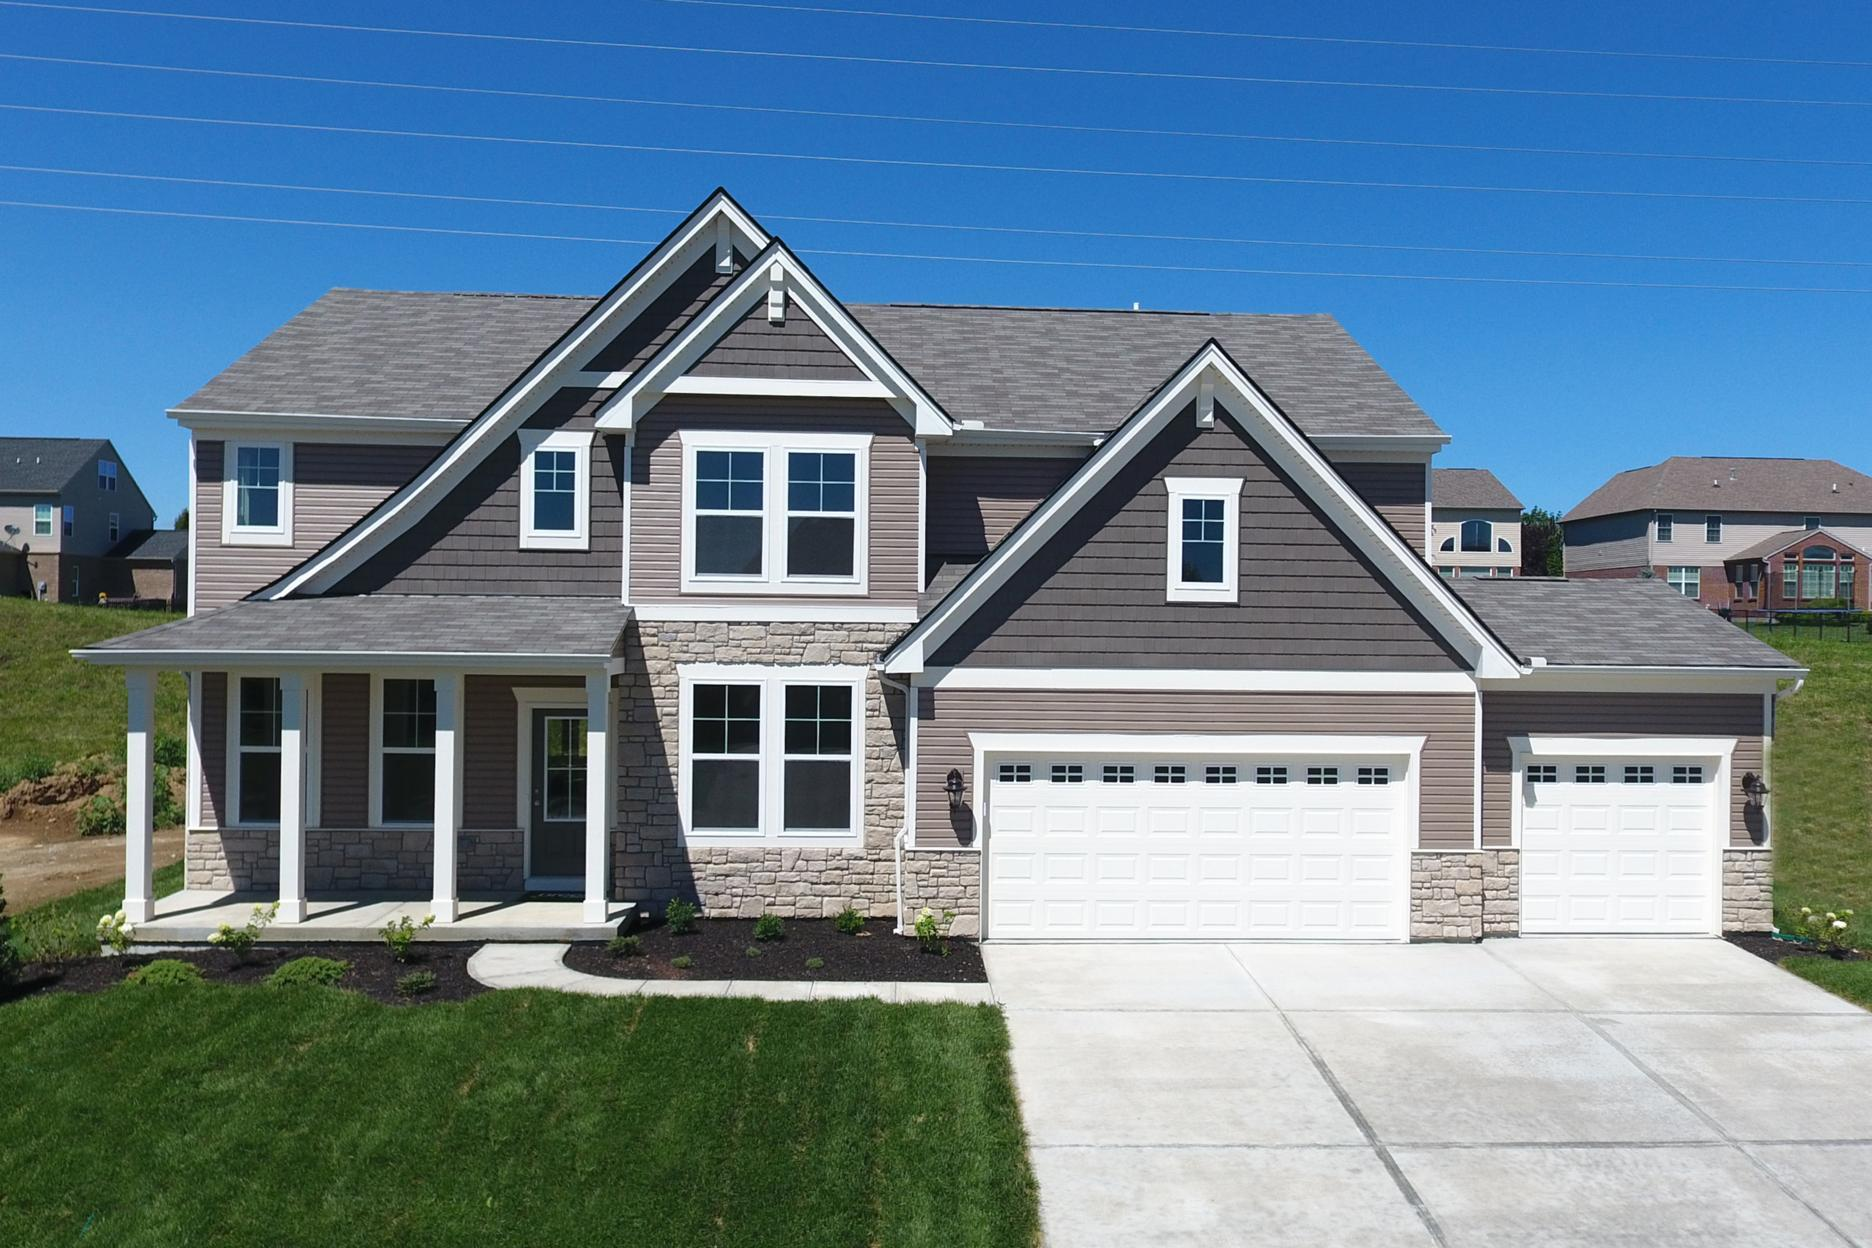 triple crown saratoga springs patio homes in union ky new